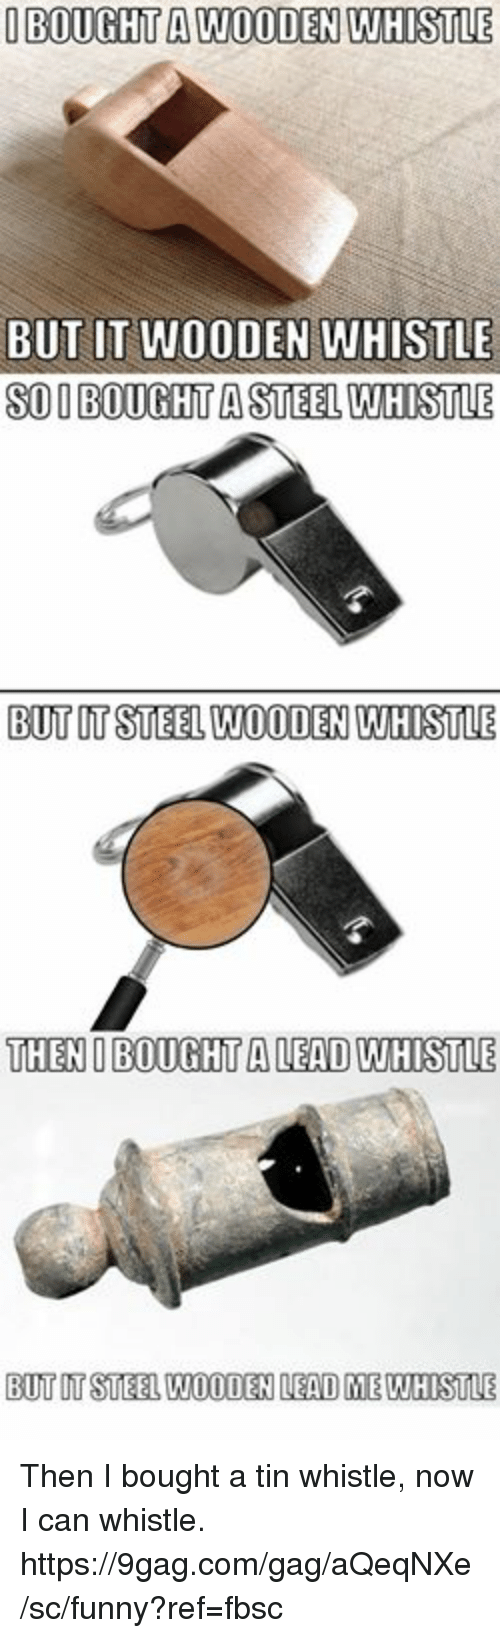 Sois: IBOUGHT A WOODEN WHISTLE  BUT IT WOODEN WHISTLE  SOI BOUGHT A STEEL WHISTLE  BUT UT STEEL WOODEN WHISTLE  THENI BOUGHT A LEAD WHISTLE  BUT IT STEEL WOODEN LEAD ME WHISTLE Then I bought a tin whistle, now I can whistle. https://9gag.com/gag/aQeqNXe/sc/funny?ref=fbsc